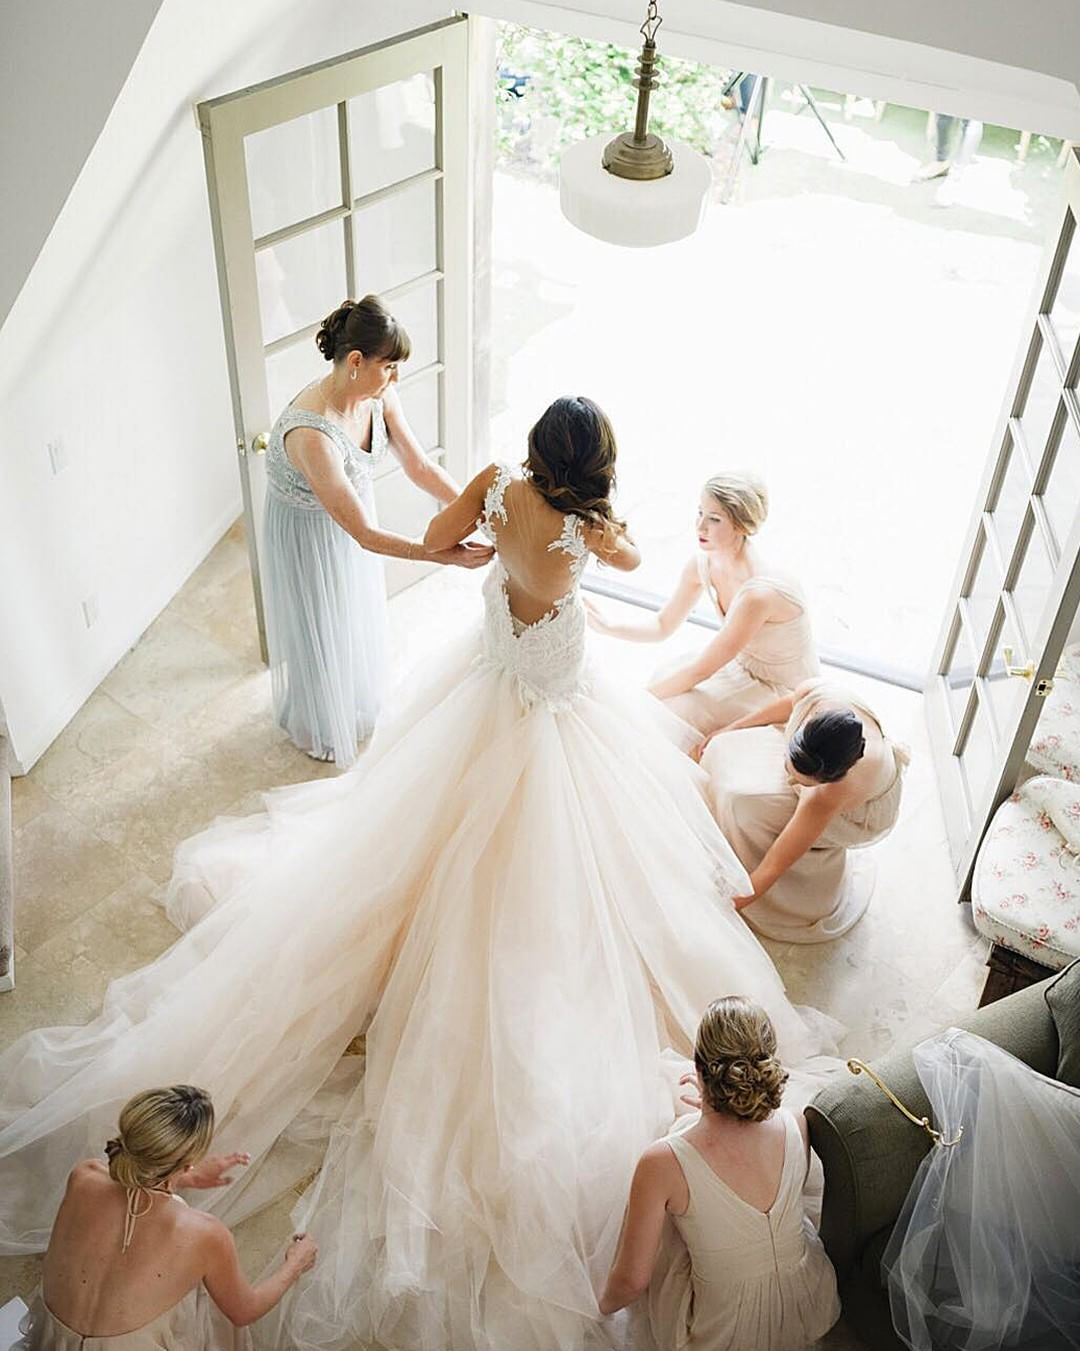 Every bride needs pretty girls around her to make the day stay